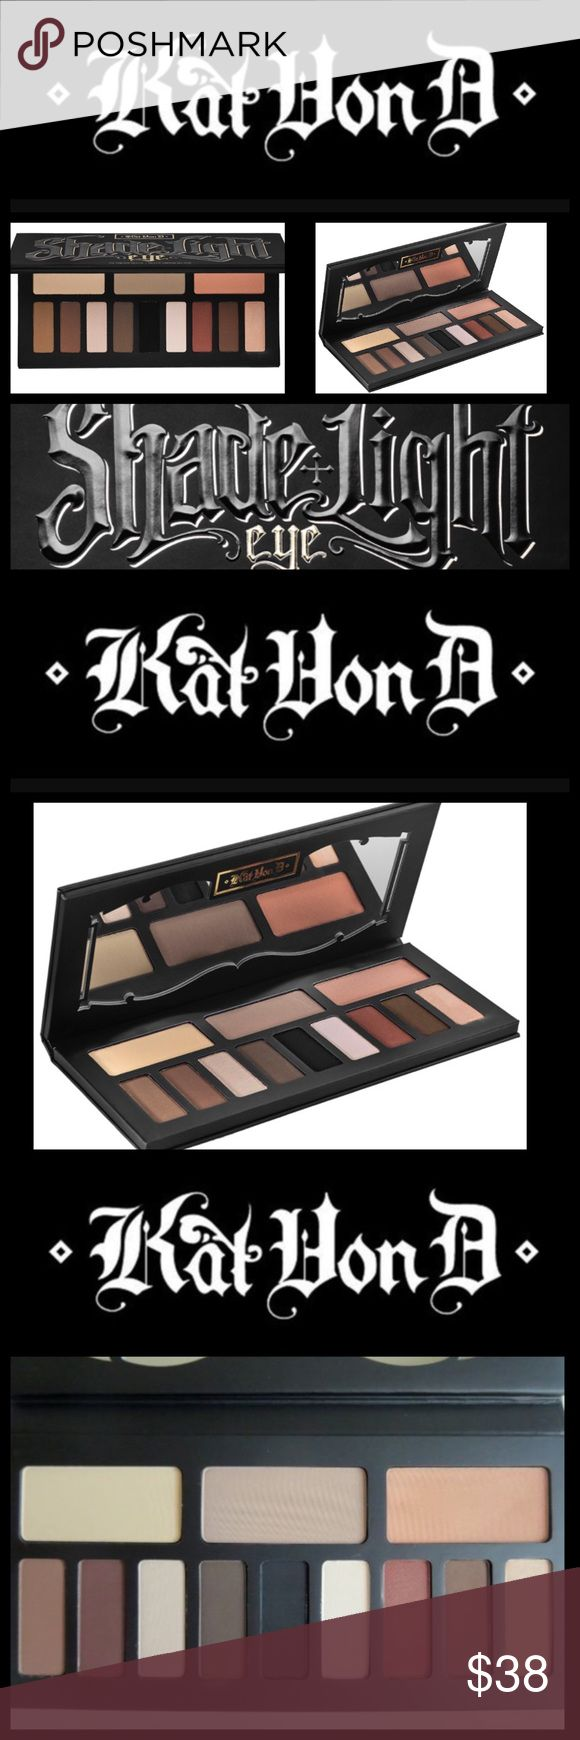 Kat Von D Shade + Light Eye Contour Kit An eye contouring palette featuring three color quads in neutral, cool, and warm shades.  This palette contains:  - 3 x base shades in Laetus (creamy nude), Lazarus (cool taupe), Ludwin (peachy bronze)- 3 x Contour shades in Samael (dusty fawn), Saleos (smoky brown), Succubus (rich rust) -3 x Define shades in Solas (espresso brown), Shax (jet black), Sytry (chocolate brown)  - 3 x Highlight shades in Lucius (soft beige), Liberatus (pinkish ivory)…